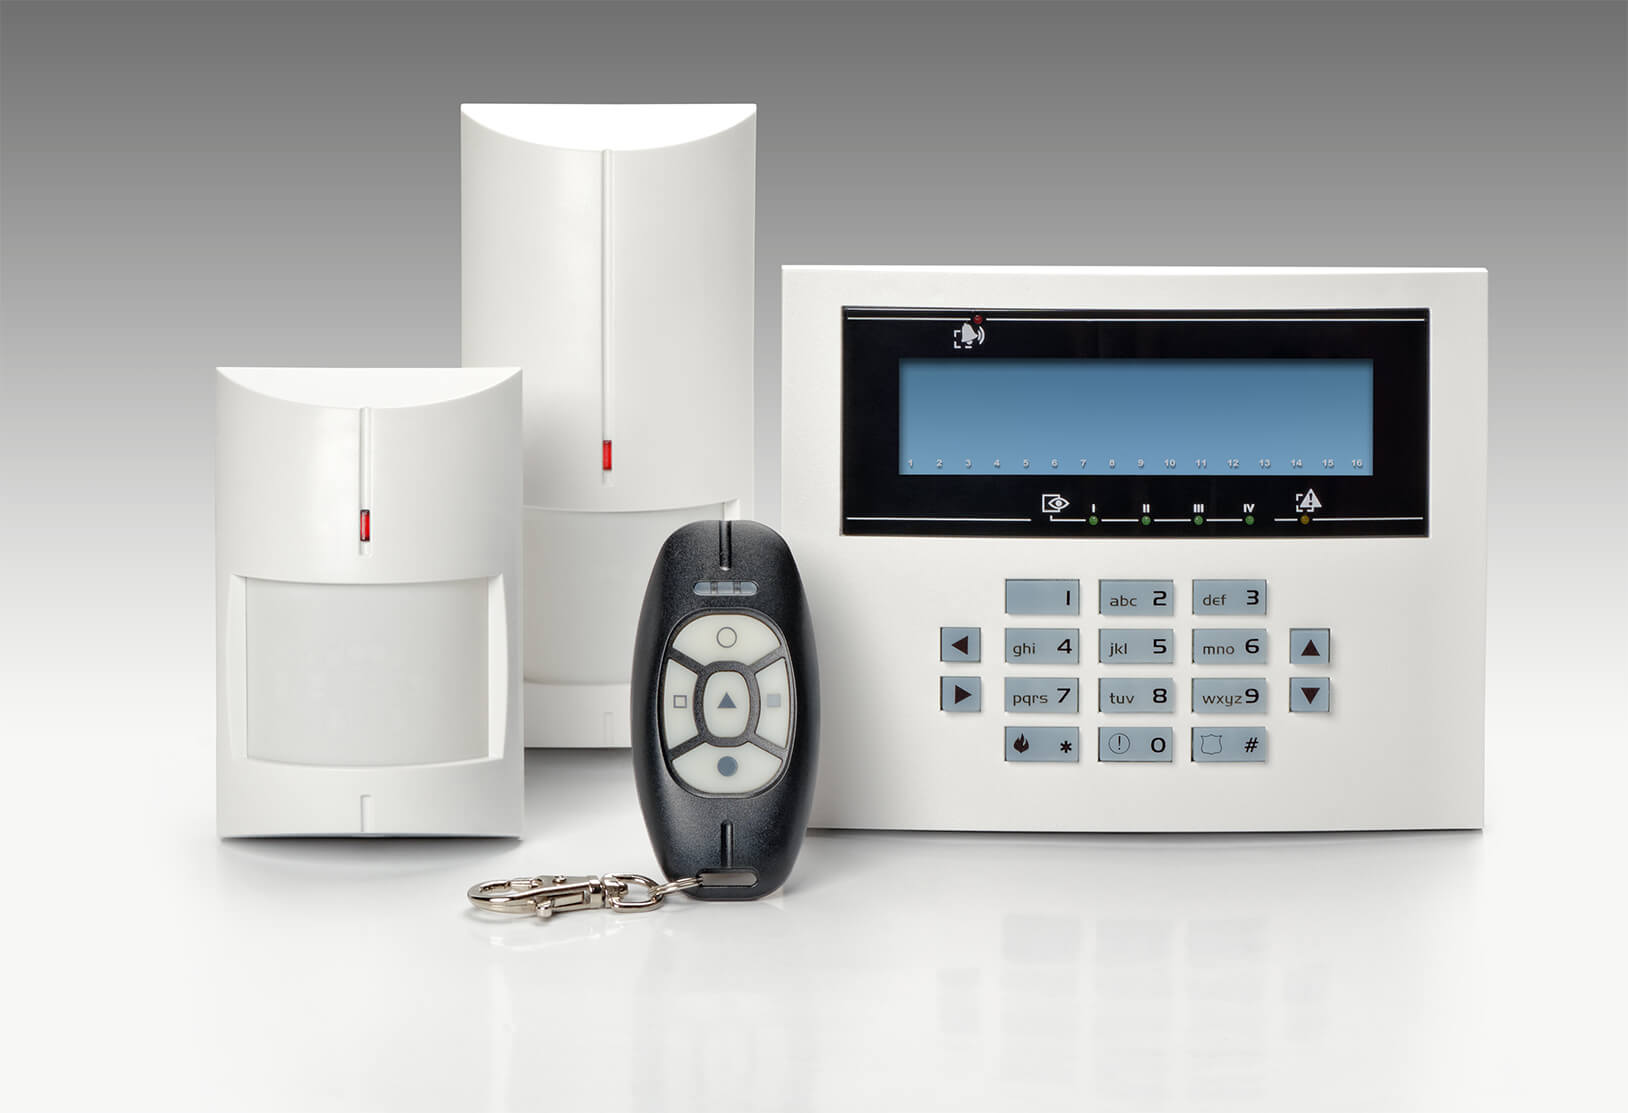 Business & Residential NACOSS Approved Burglar Alarms In Brent Cross NW4 - Local Brent Cross NW4 security company.Call 02078872244 - Dedicated to Safety & Security. Companies, shops and homes ..